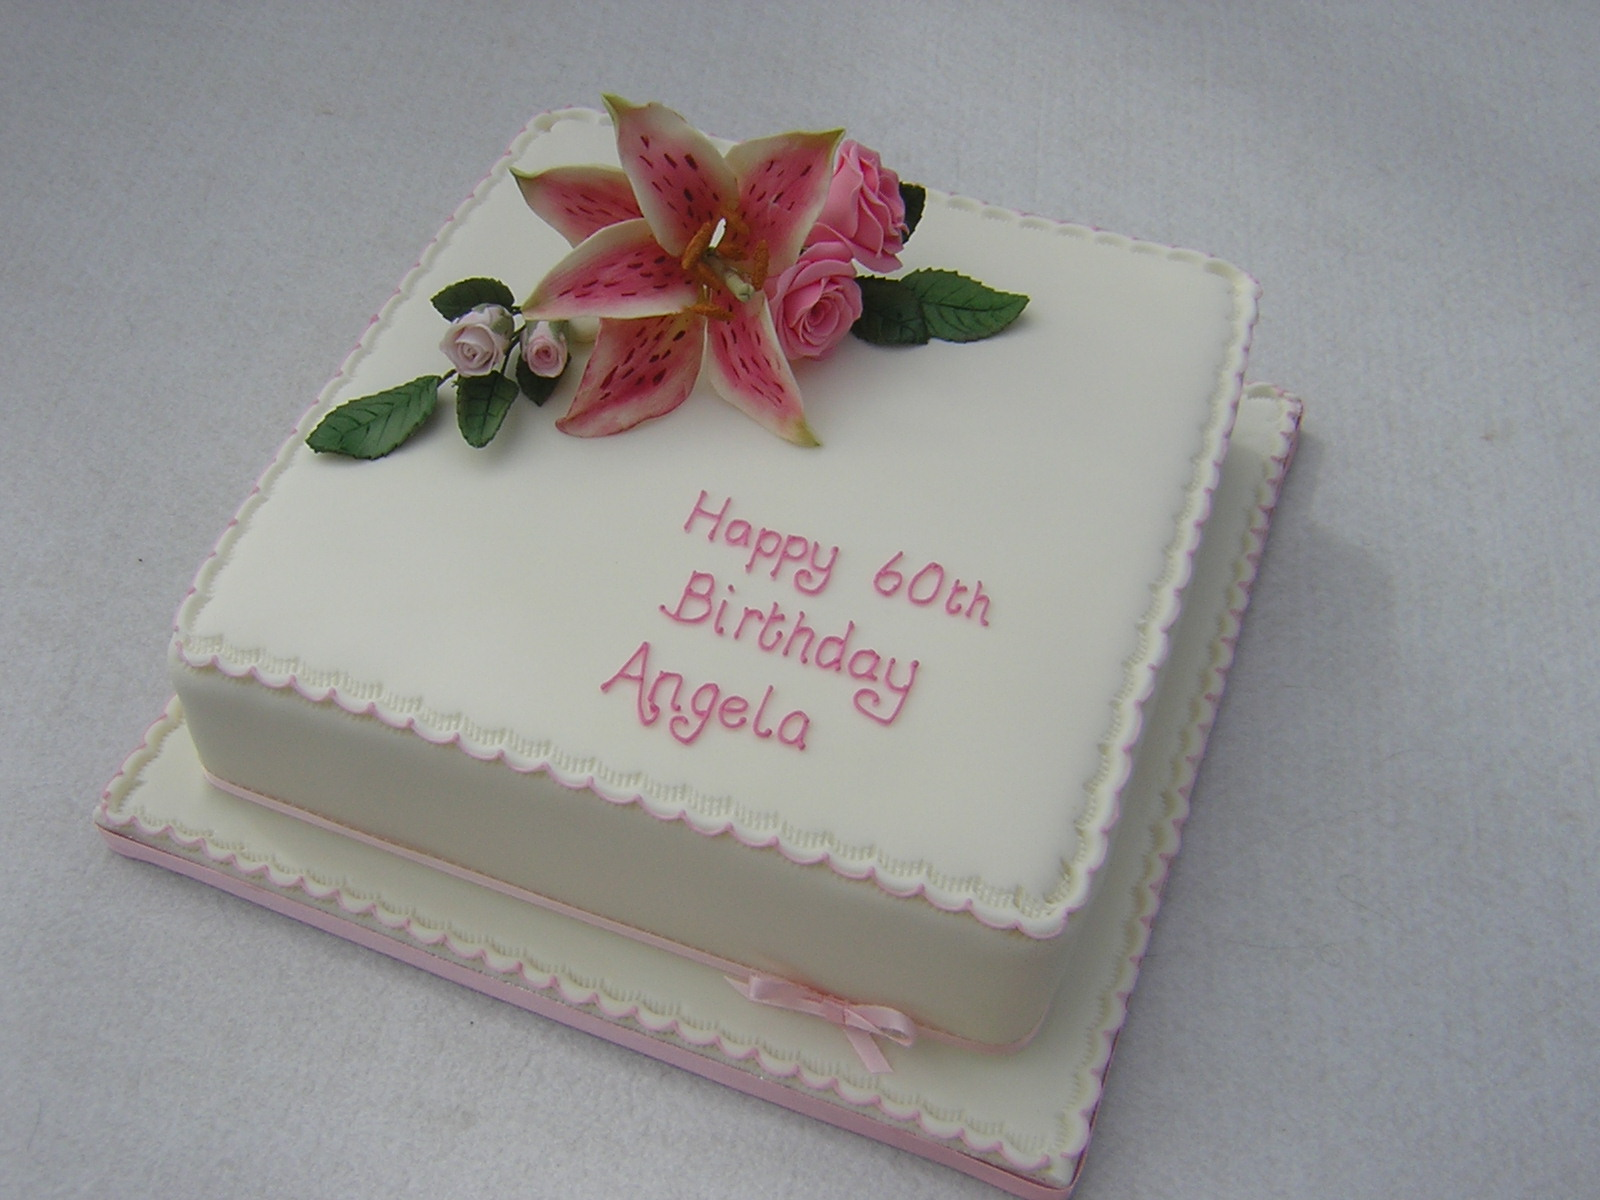 Birthday cake angela image inspiration of cake and for Angela florist decoration